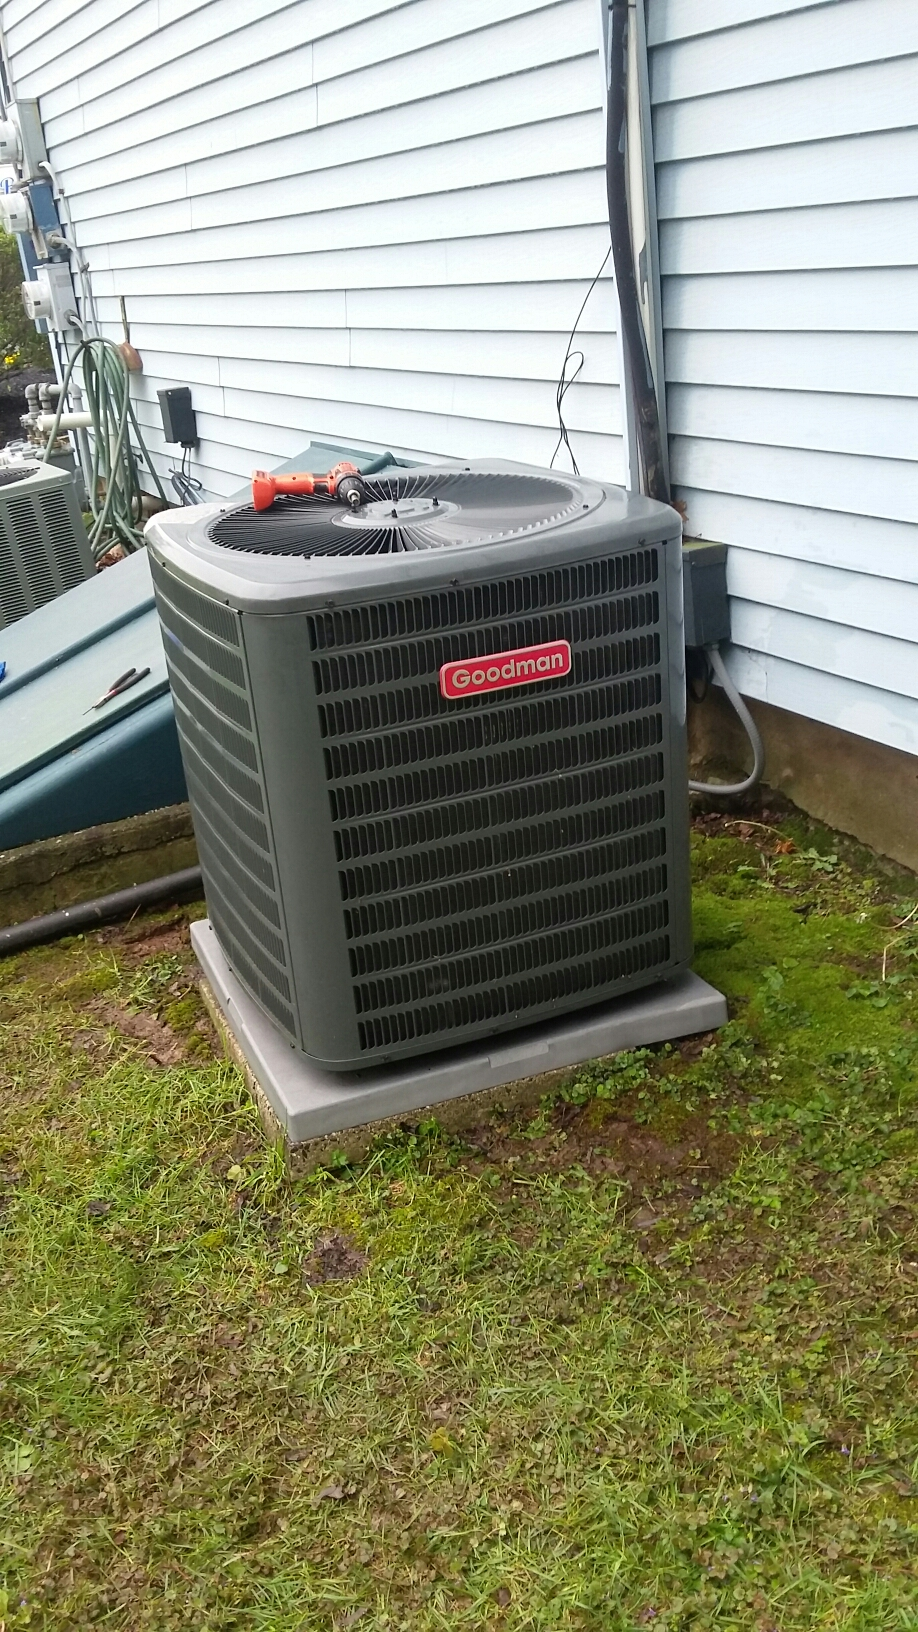 Southampton, PA - Chemical cleaned a Goodman condenser coil.